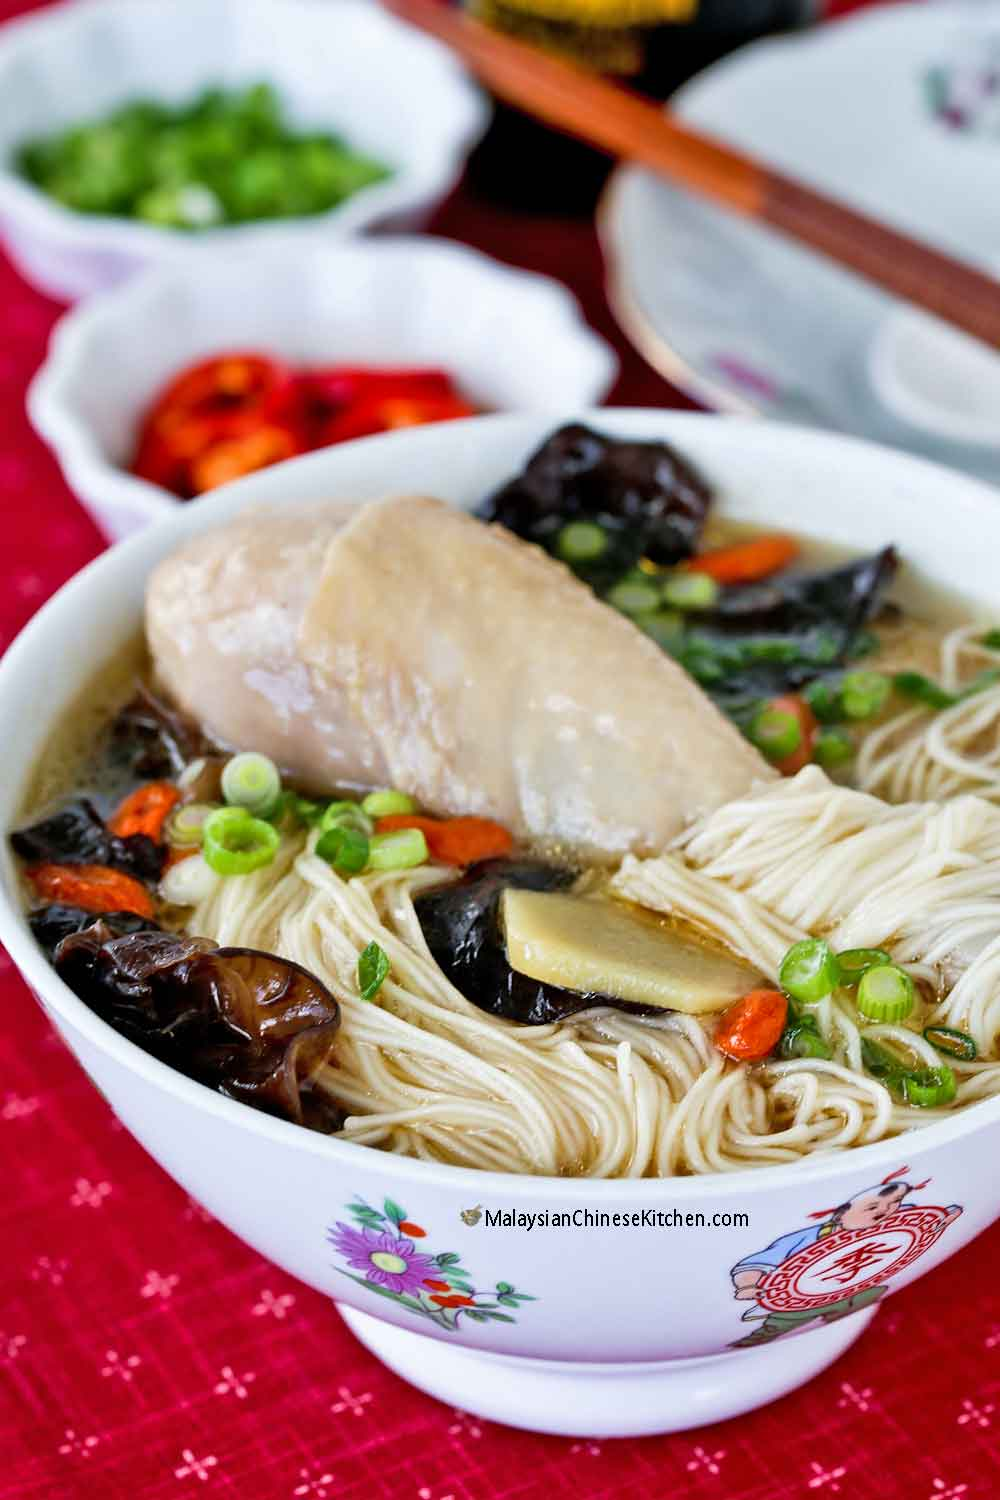 Warm and comforting Ginger Wine Chicken Mee Suah.